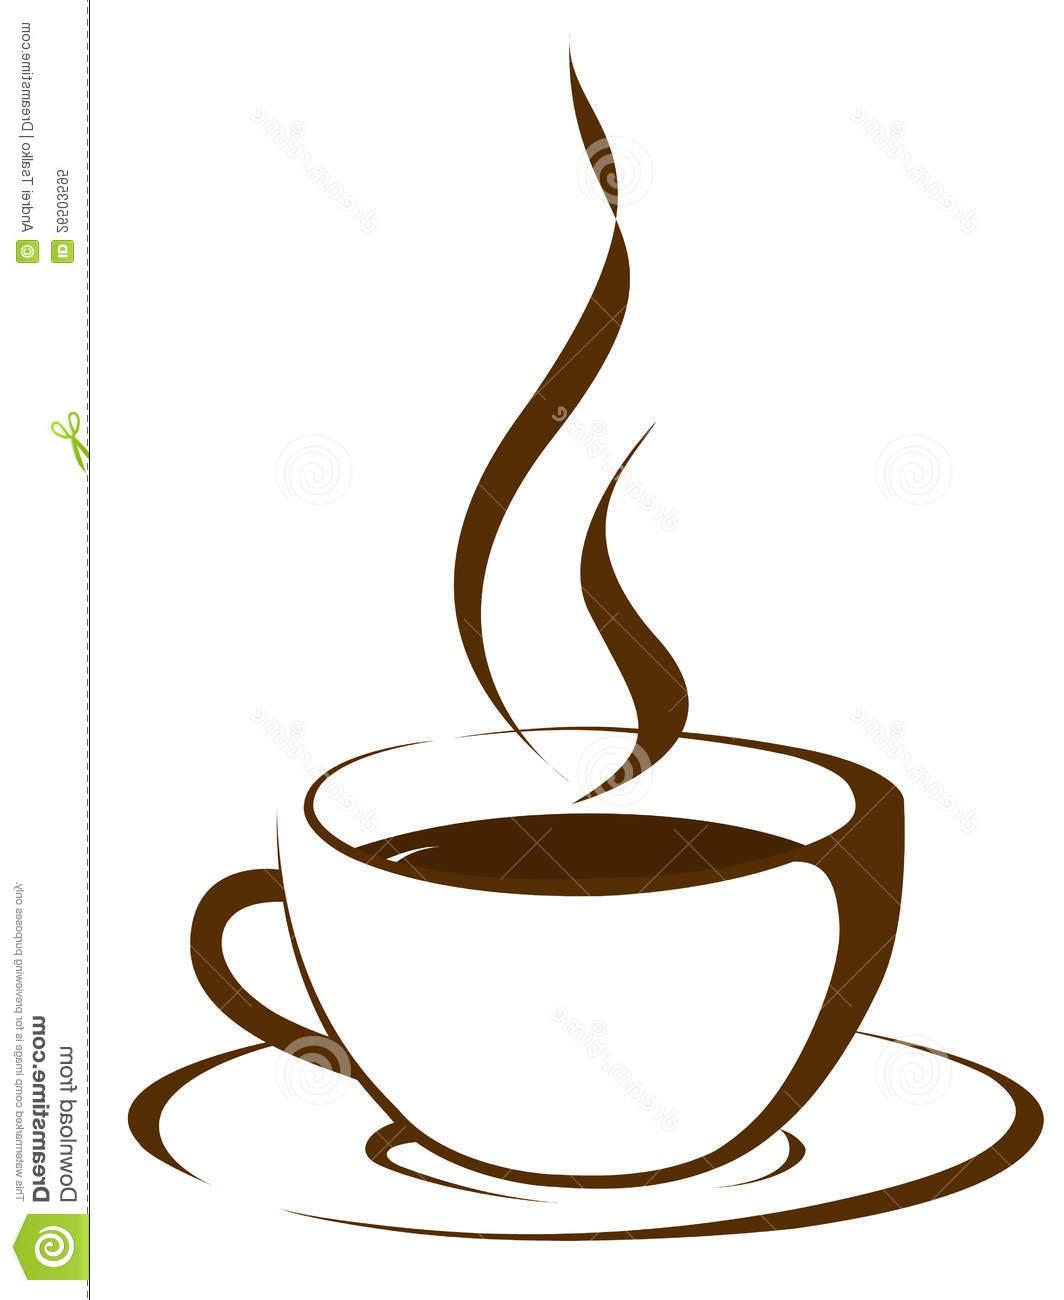 coffee clipart at getdrawings com free for personal use coffee rh getdrawings com free clip art coffee and donuts free clipart coffee and tea